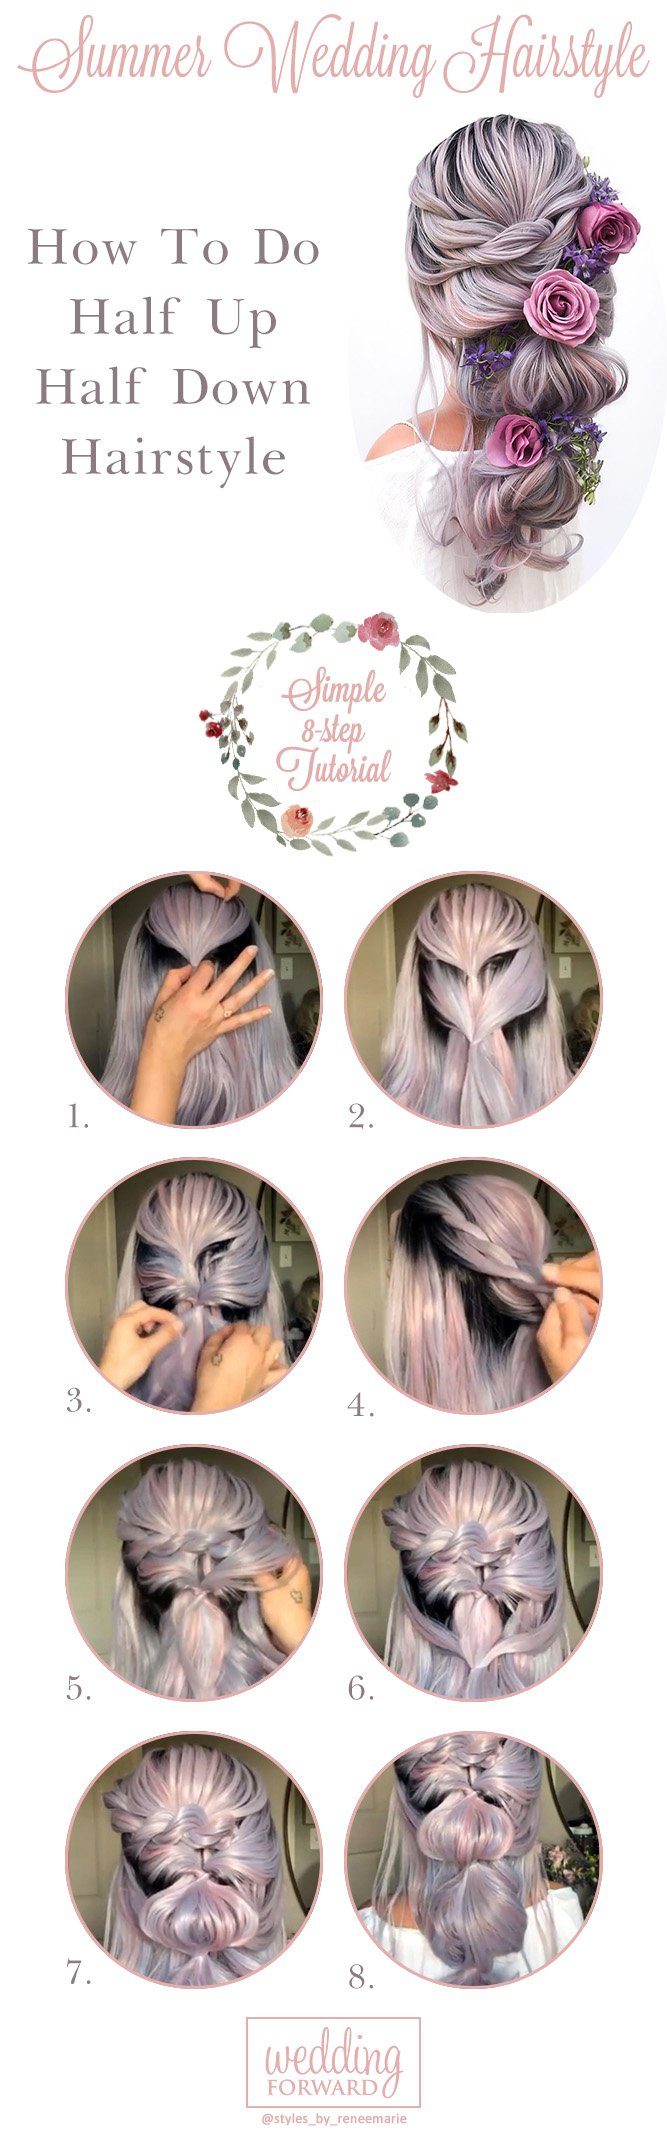 summer wedding hairstyles tutorial1